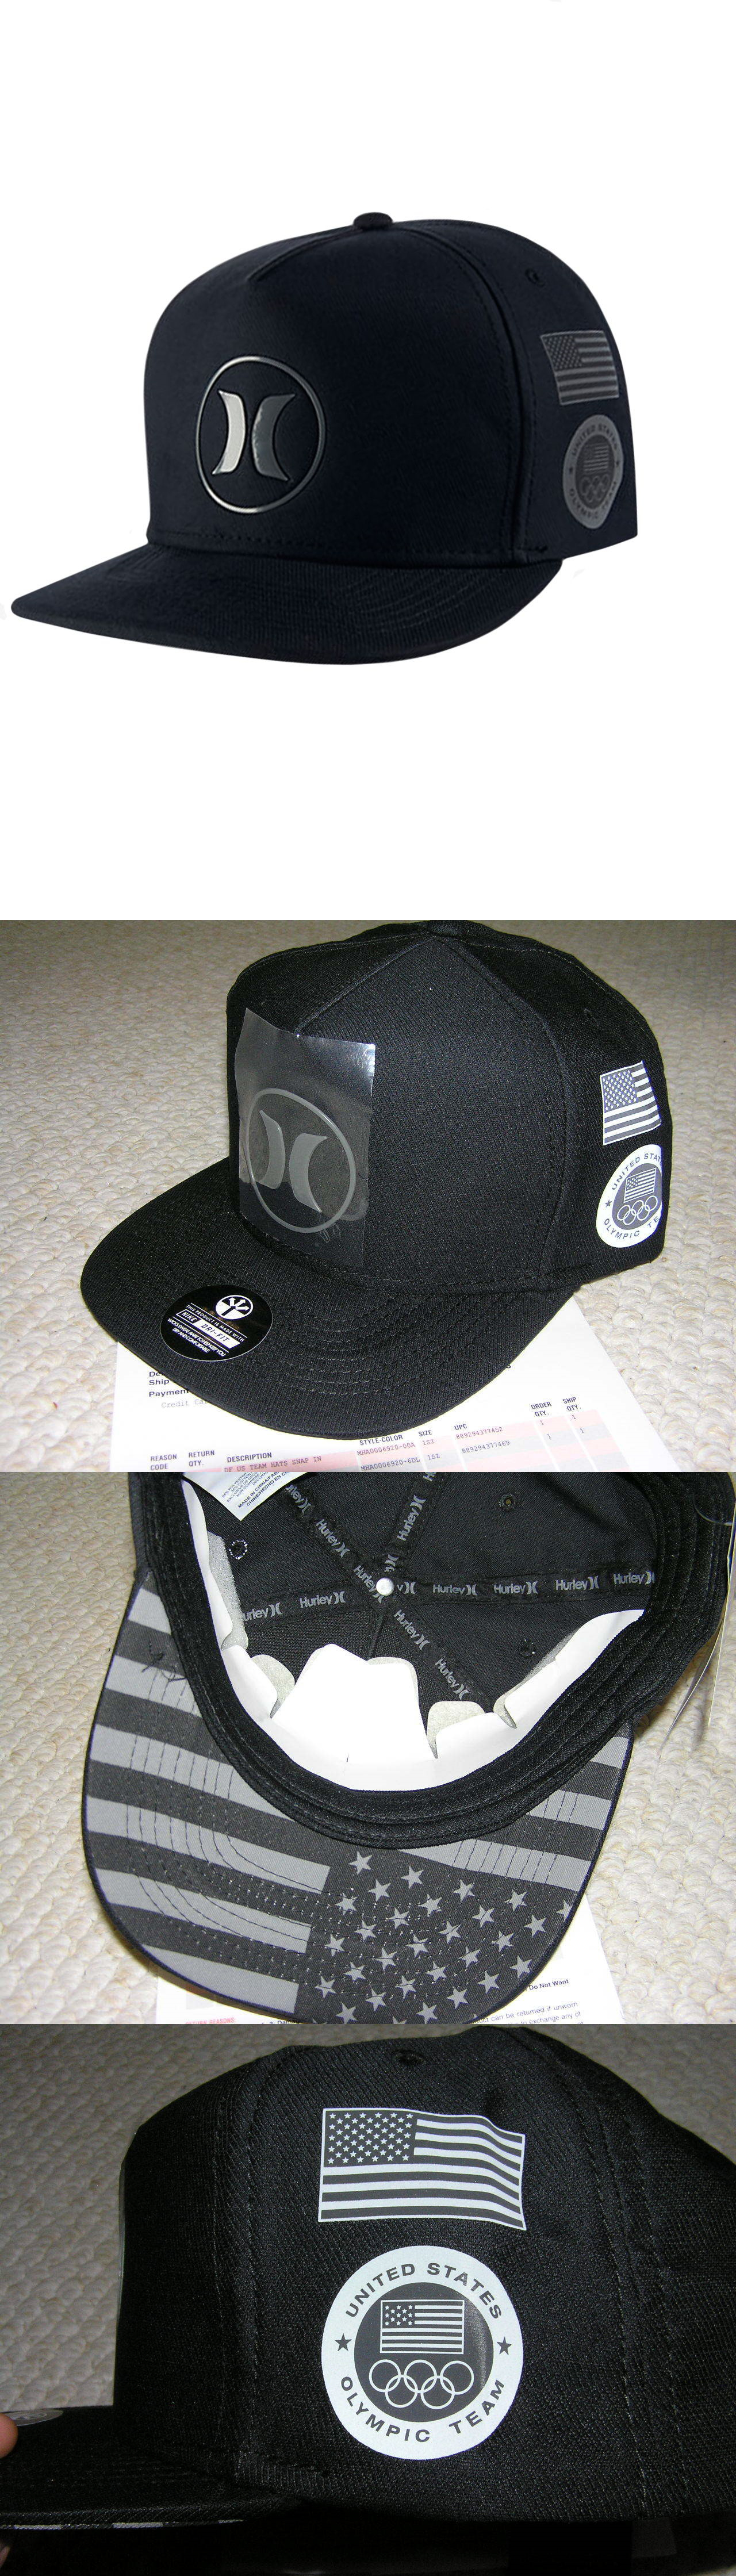 26d6f3977a0 ... buy hats 52365 hurley dri fit team usa hat snapback triple black men s  osfa olympic